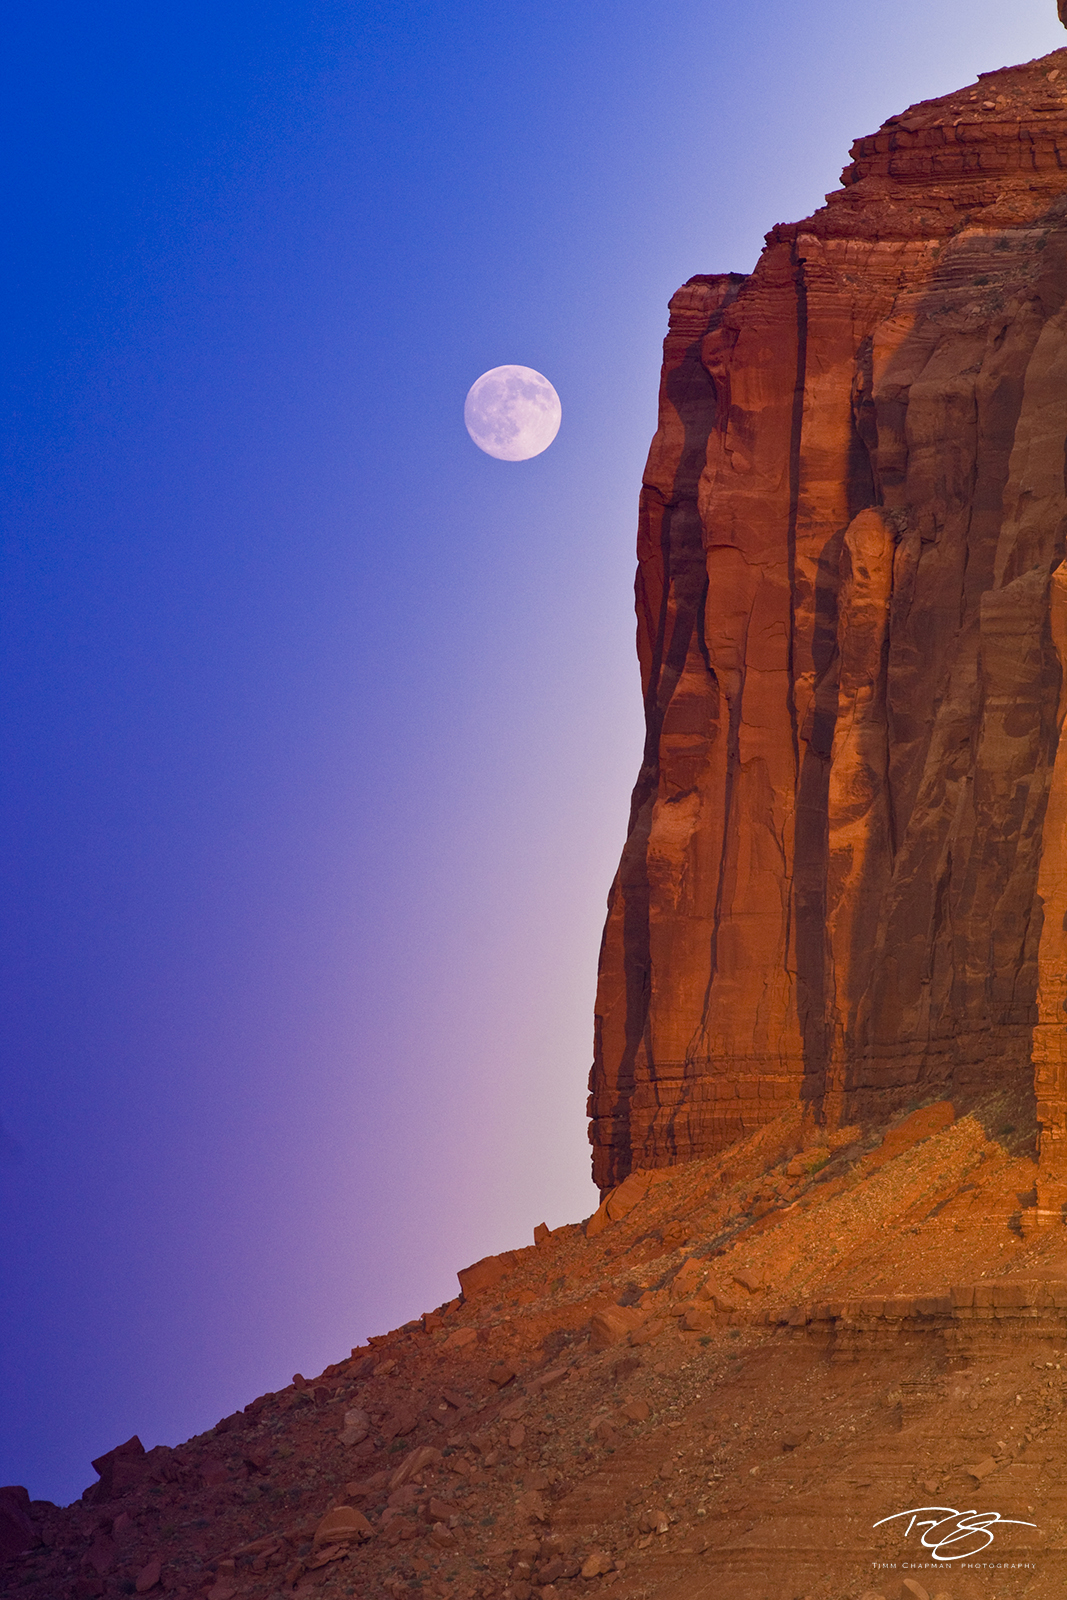 Arizona, Monument Valley, red rocks, Merrick Butte, full moon, moonrise, moon at monument valley, northern arizona, four corners, photo